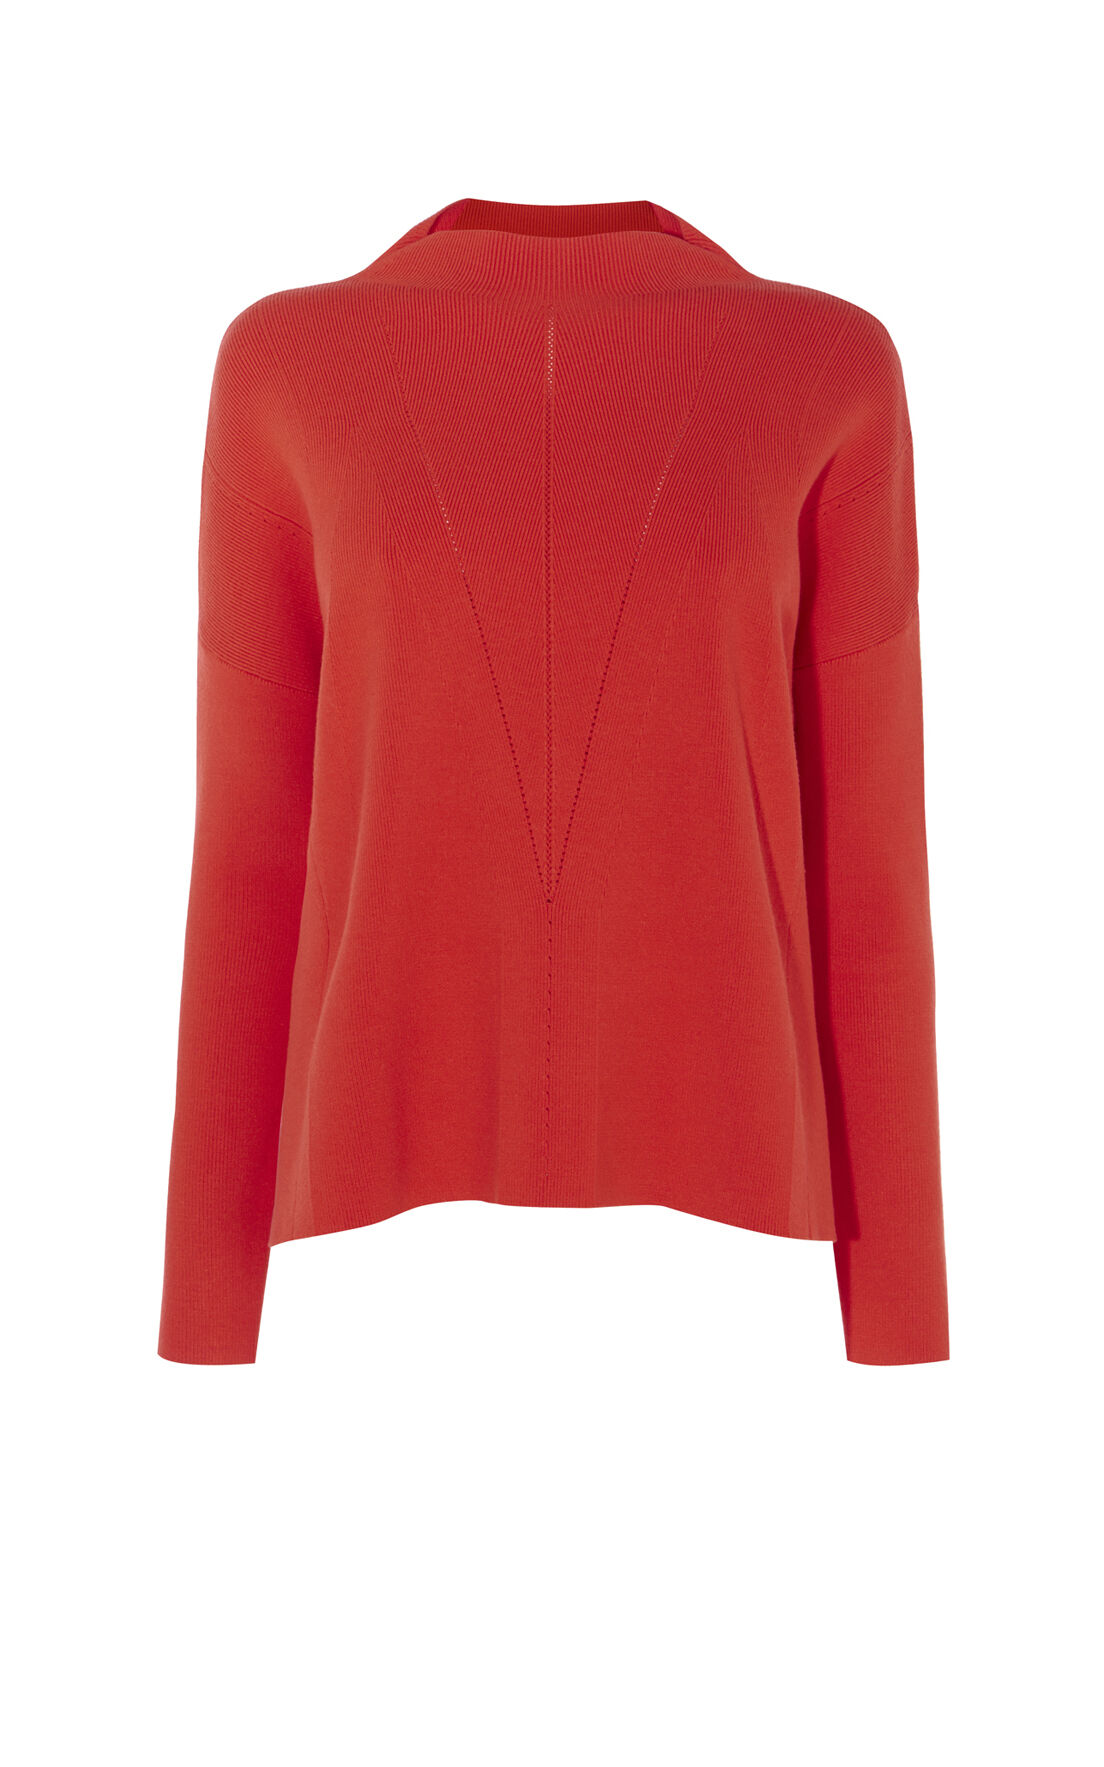 Karen Millen, FUNNEL-NECK KNIT Orange 0